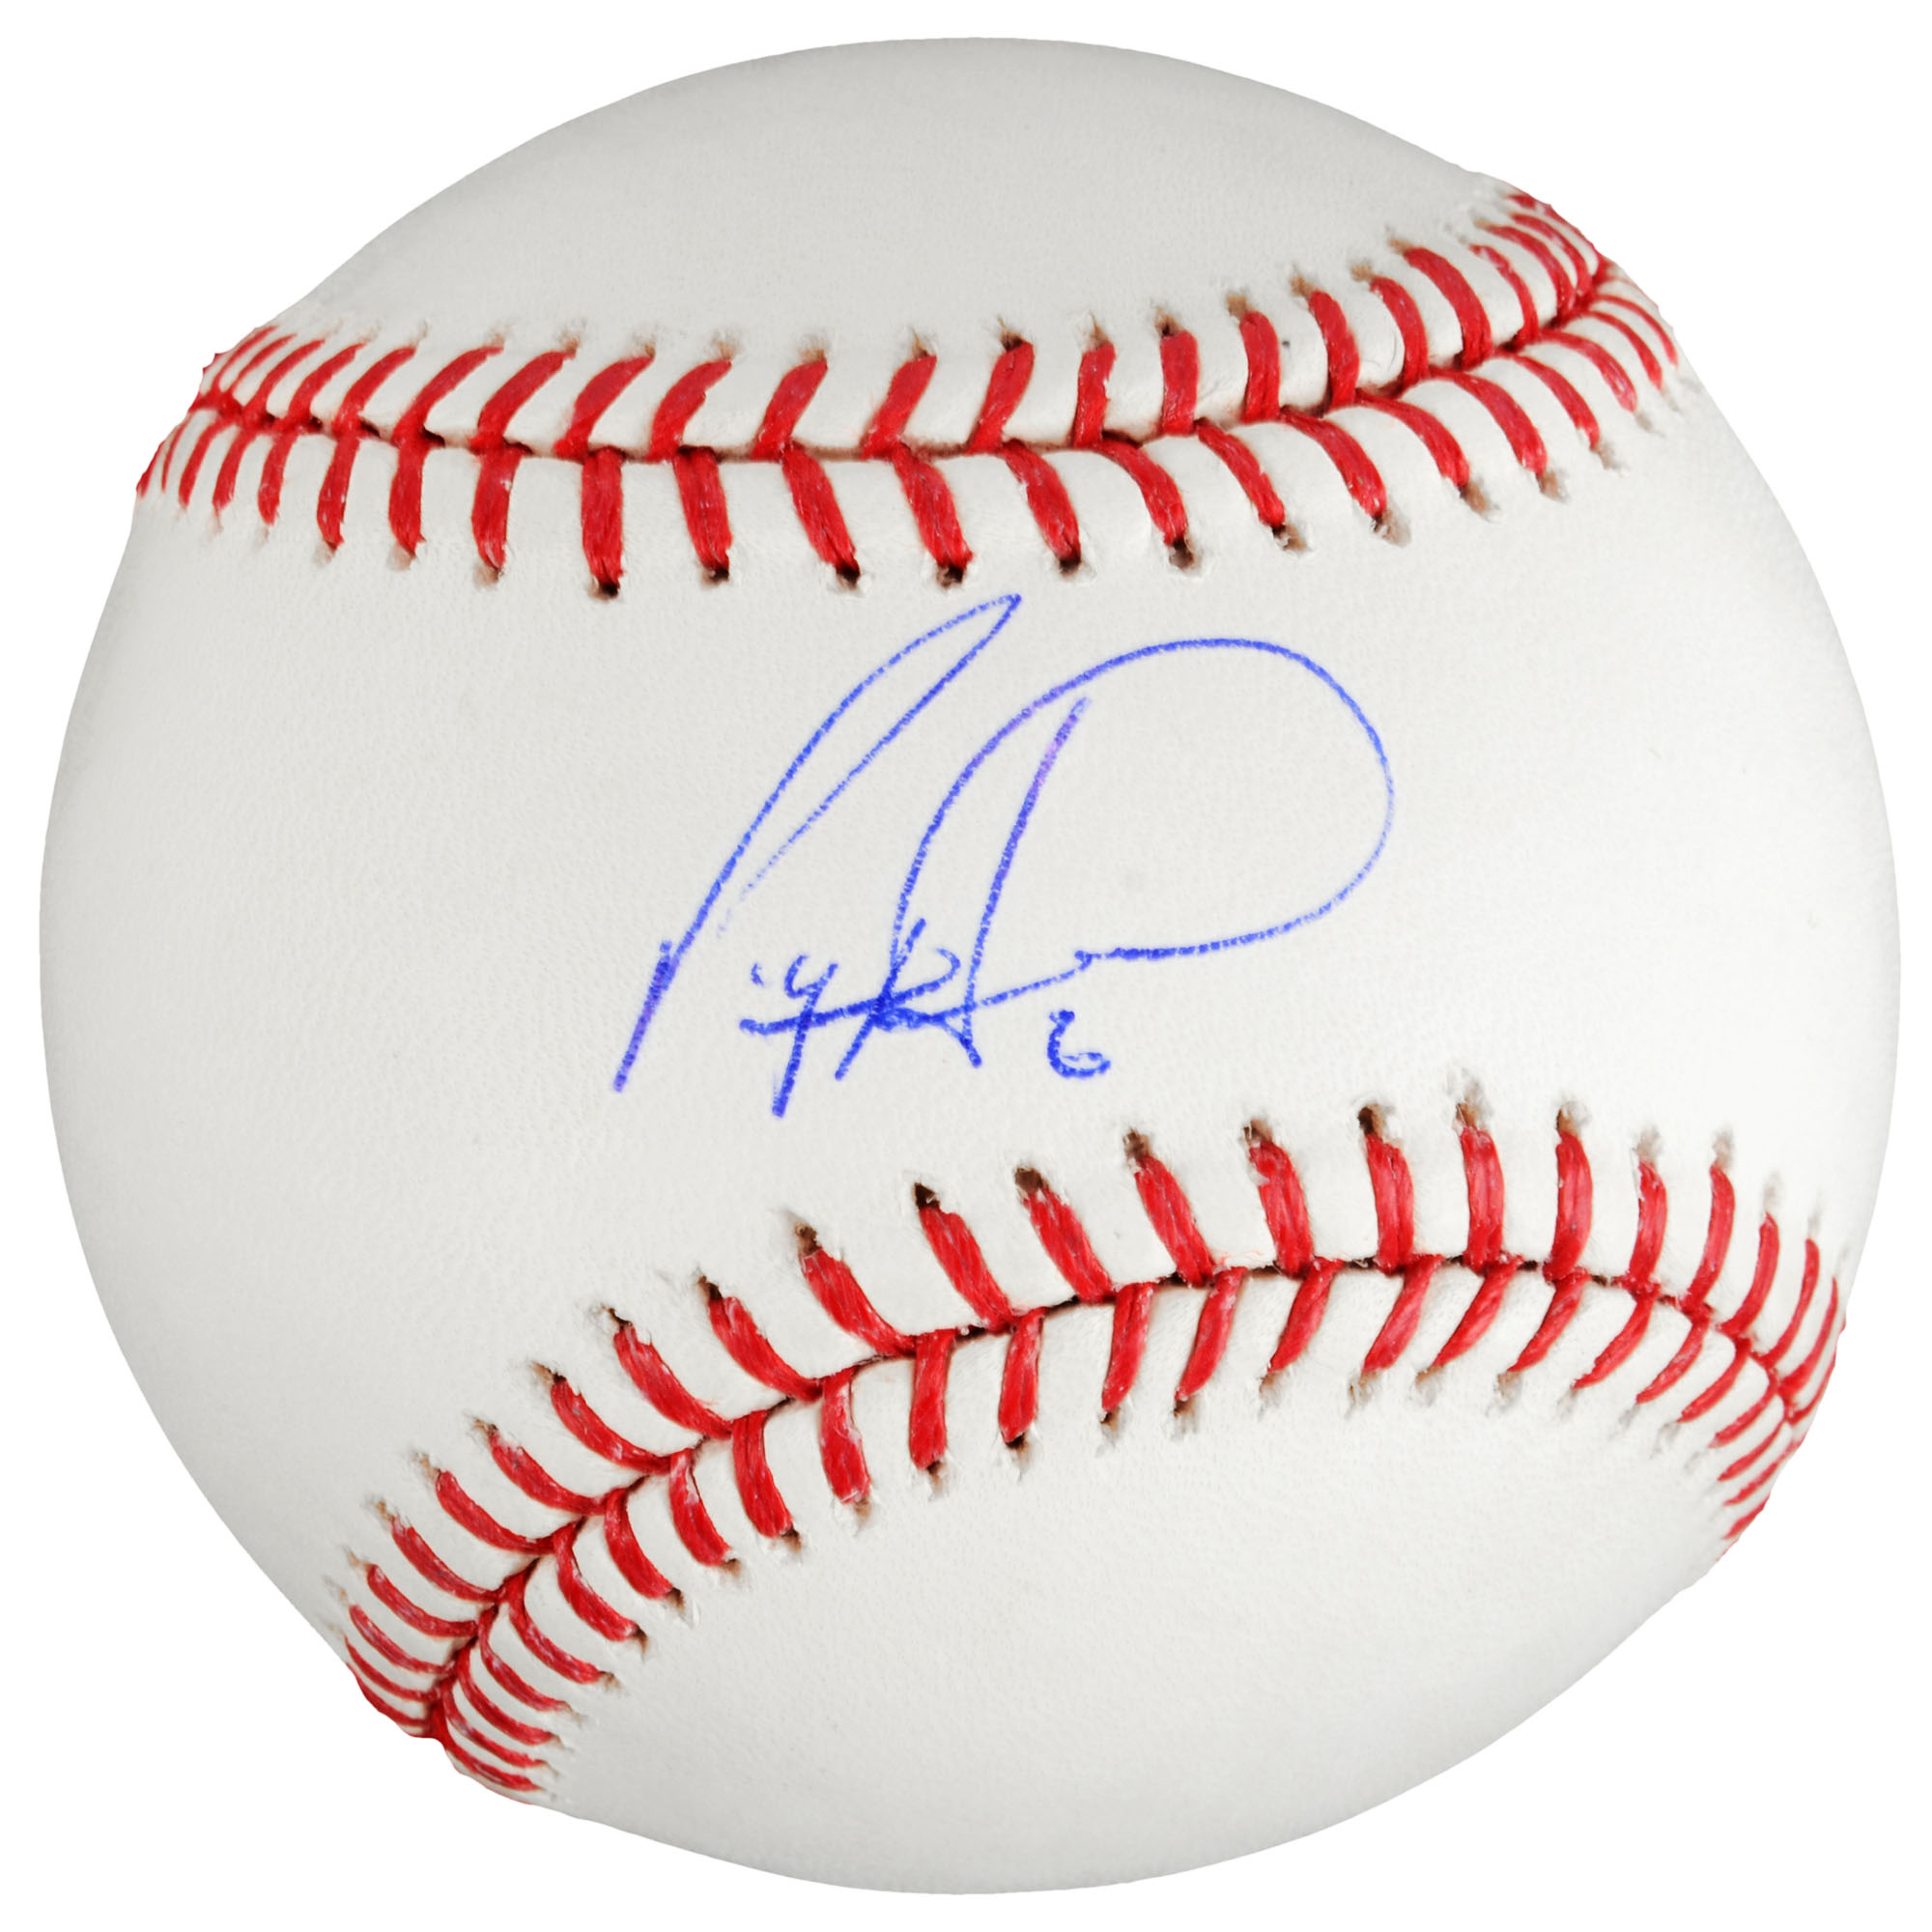 Ryan Howard Philadelphia Phillies Fanatics Authentic Autographed Baseball - No Size